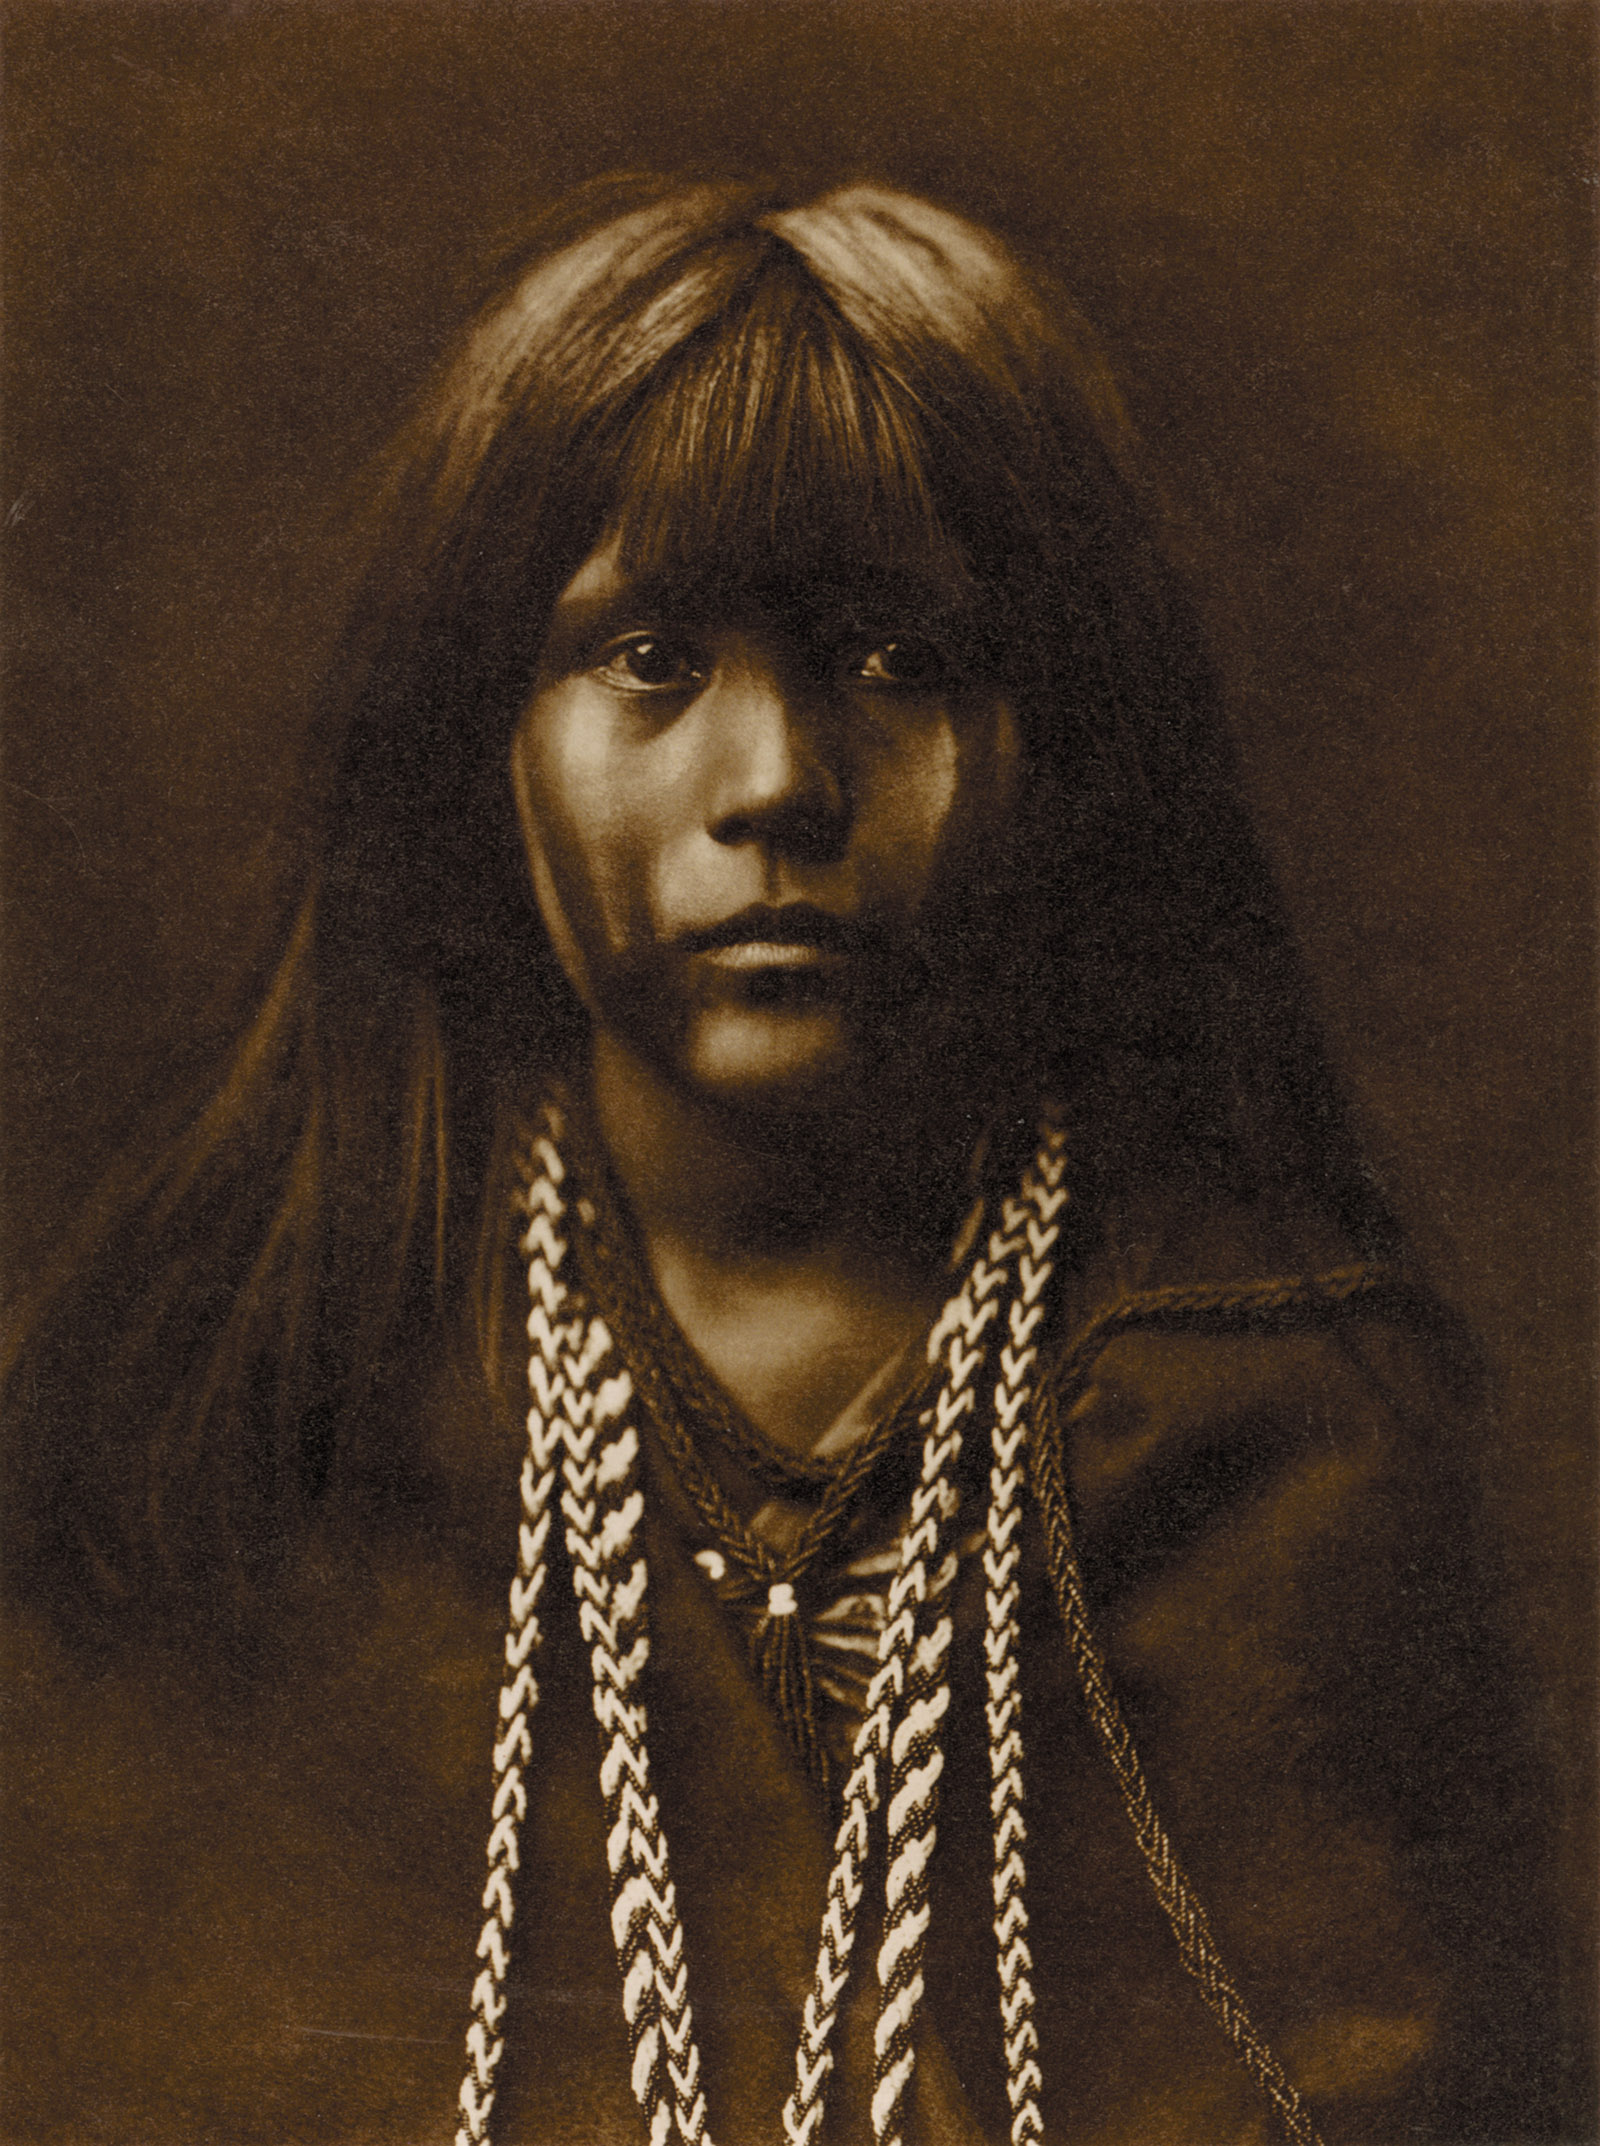 Edward S. Curtis: Mosa—Mohave, 1903/1907; from Edward S. Curtis: One Hundred Masterworks. The book is by Christopher Cardozo, with contributions by A. D. Coleman, Louise Erdrich, and others. It is published by Delmonico/Prestel and the Foundation for the Exhibition of Photography.